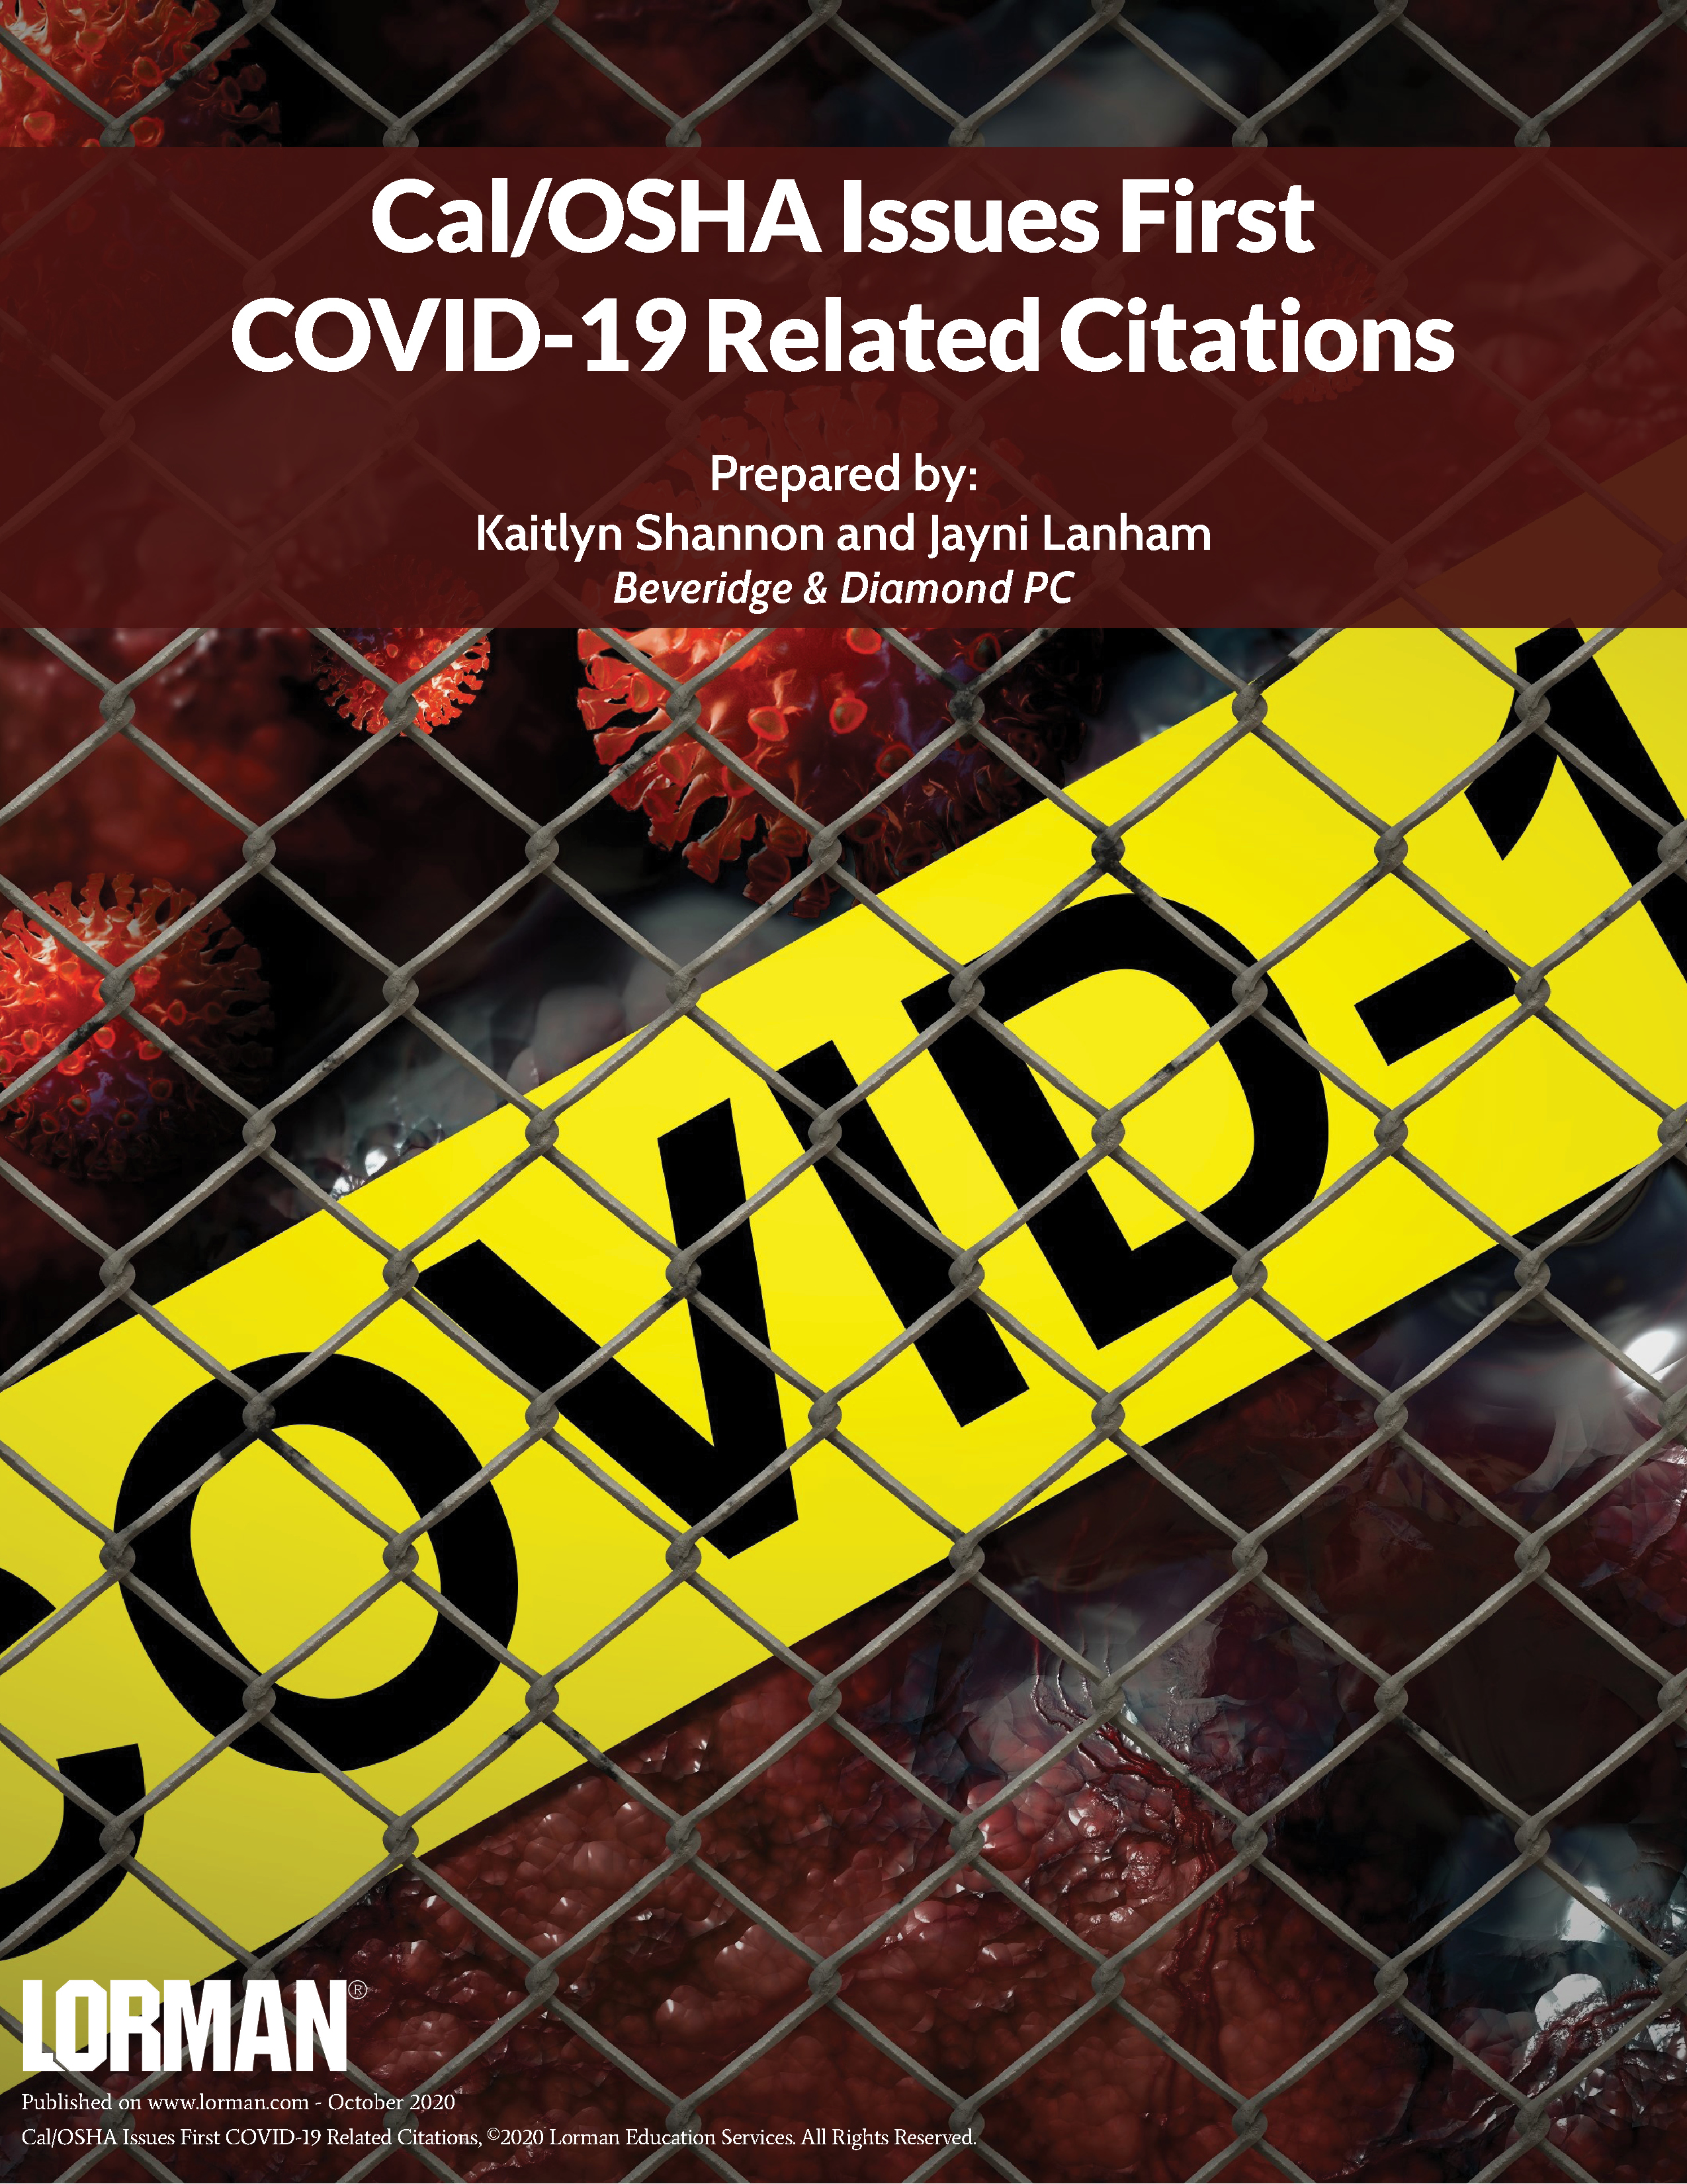 Cal/OSHA Issues First COVID-19 Related Citations